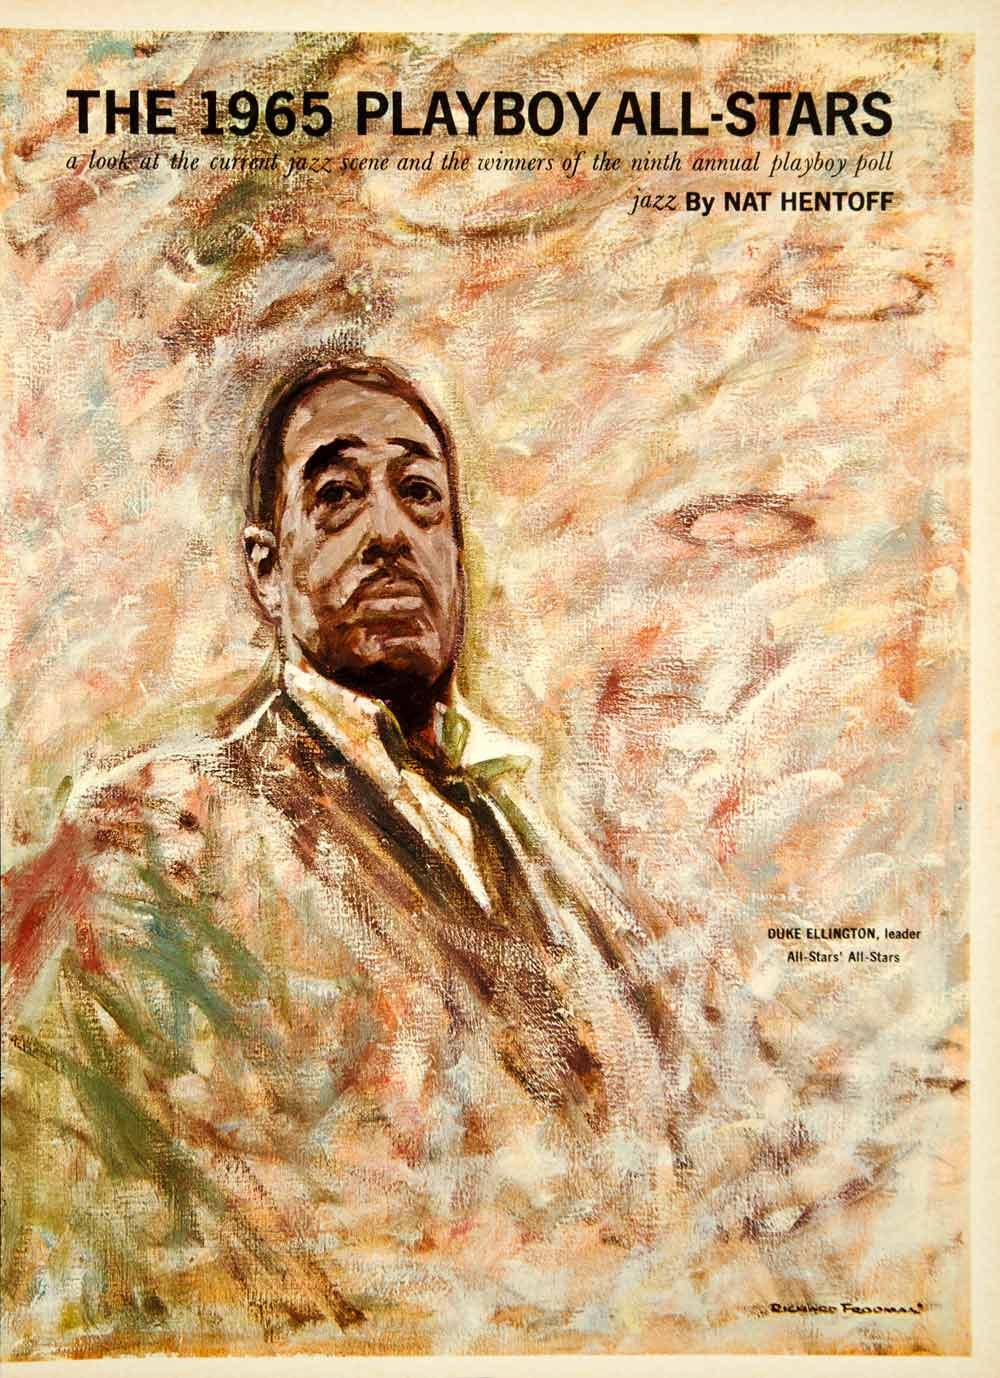 1965 Article Nat Hentoff Jazz Music Duke Ellington Cannonball Adderley YMMA3